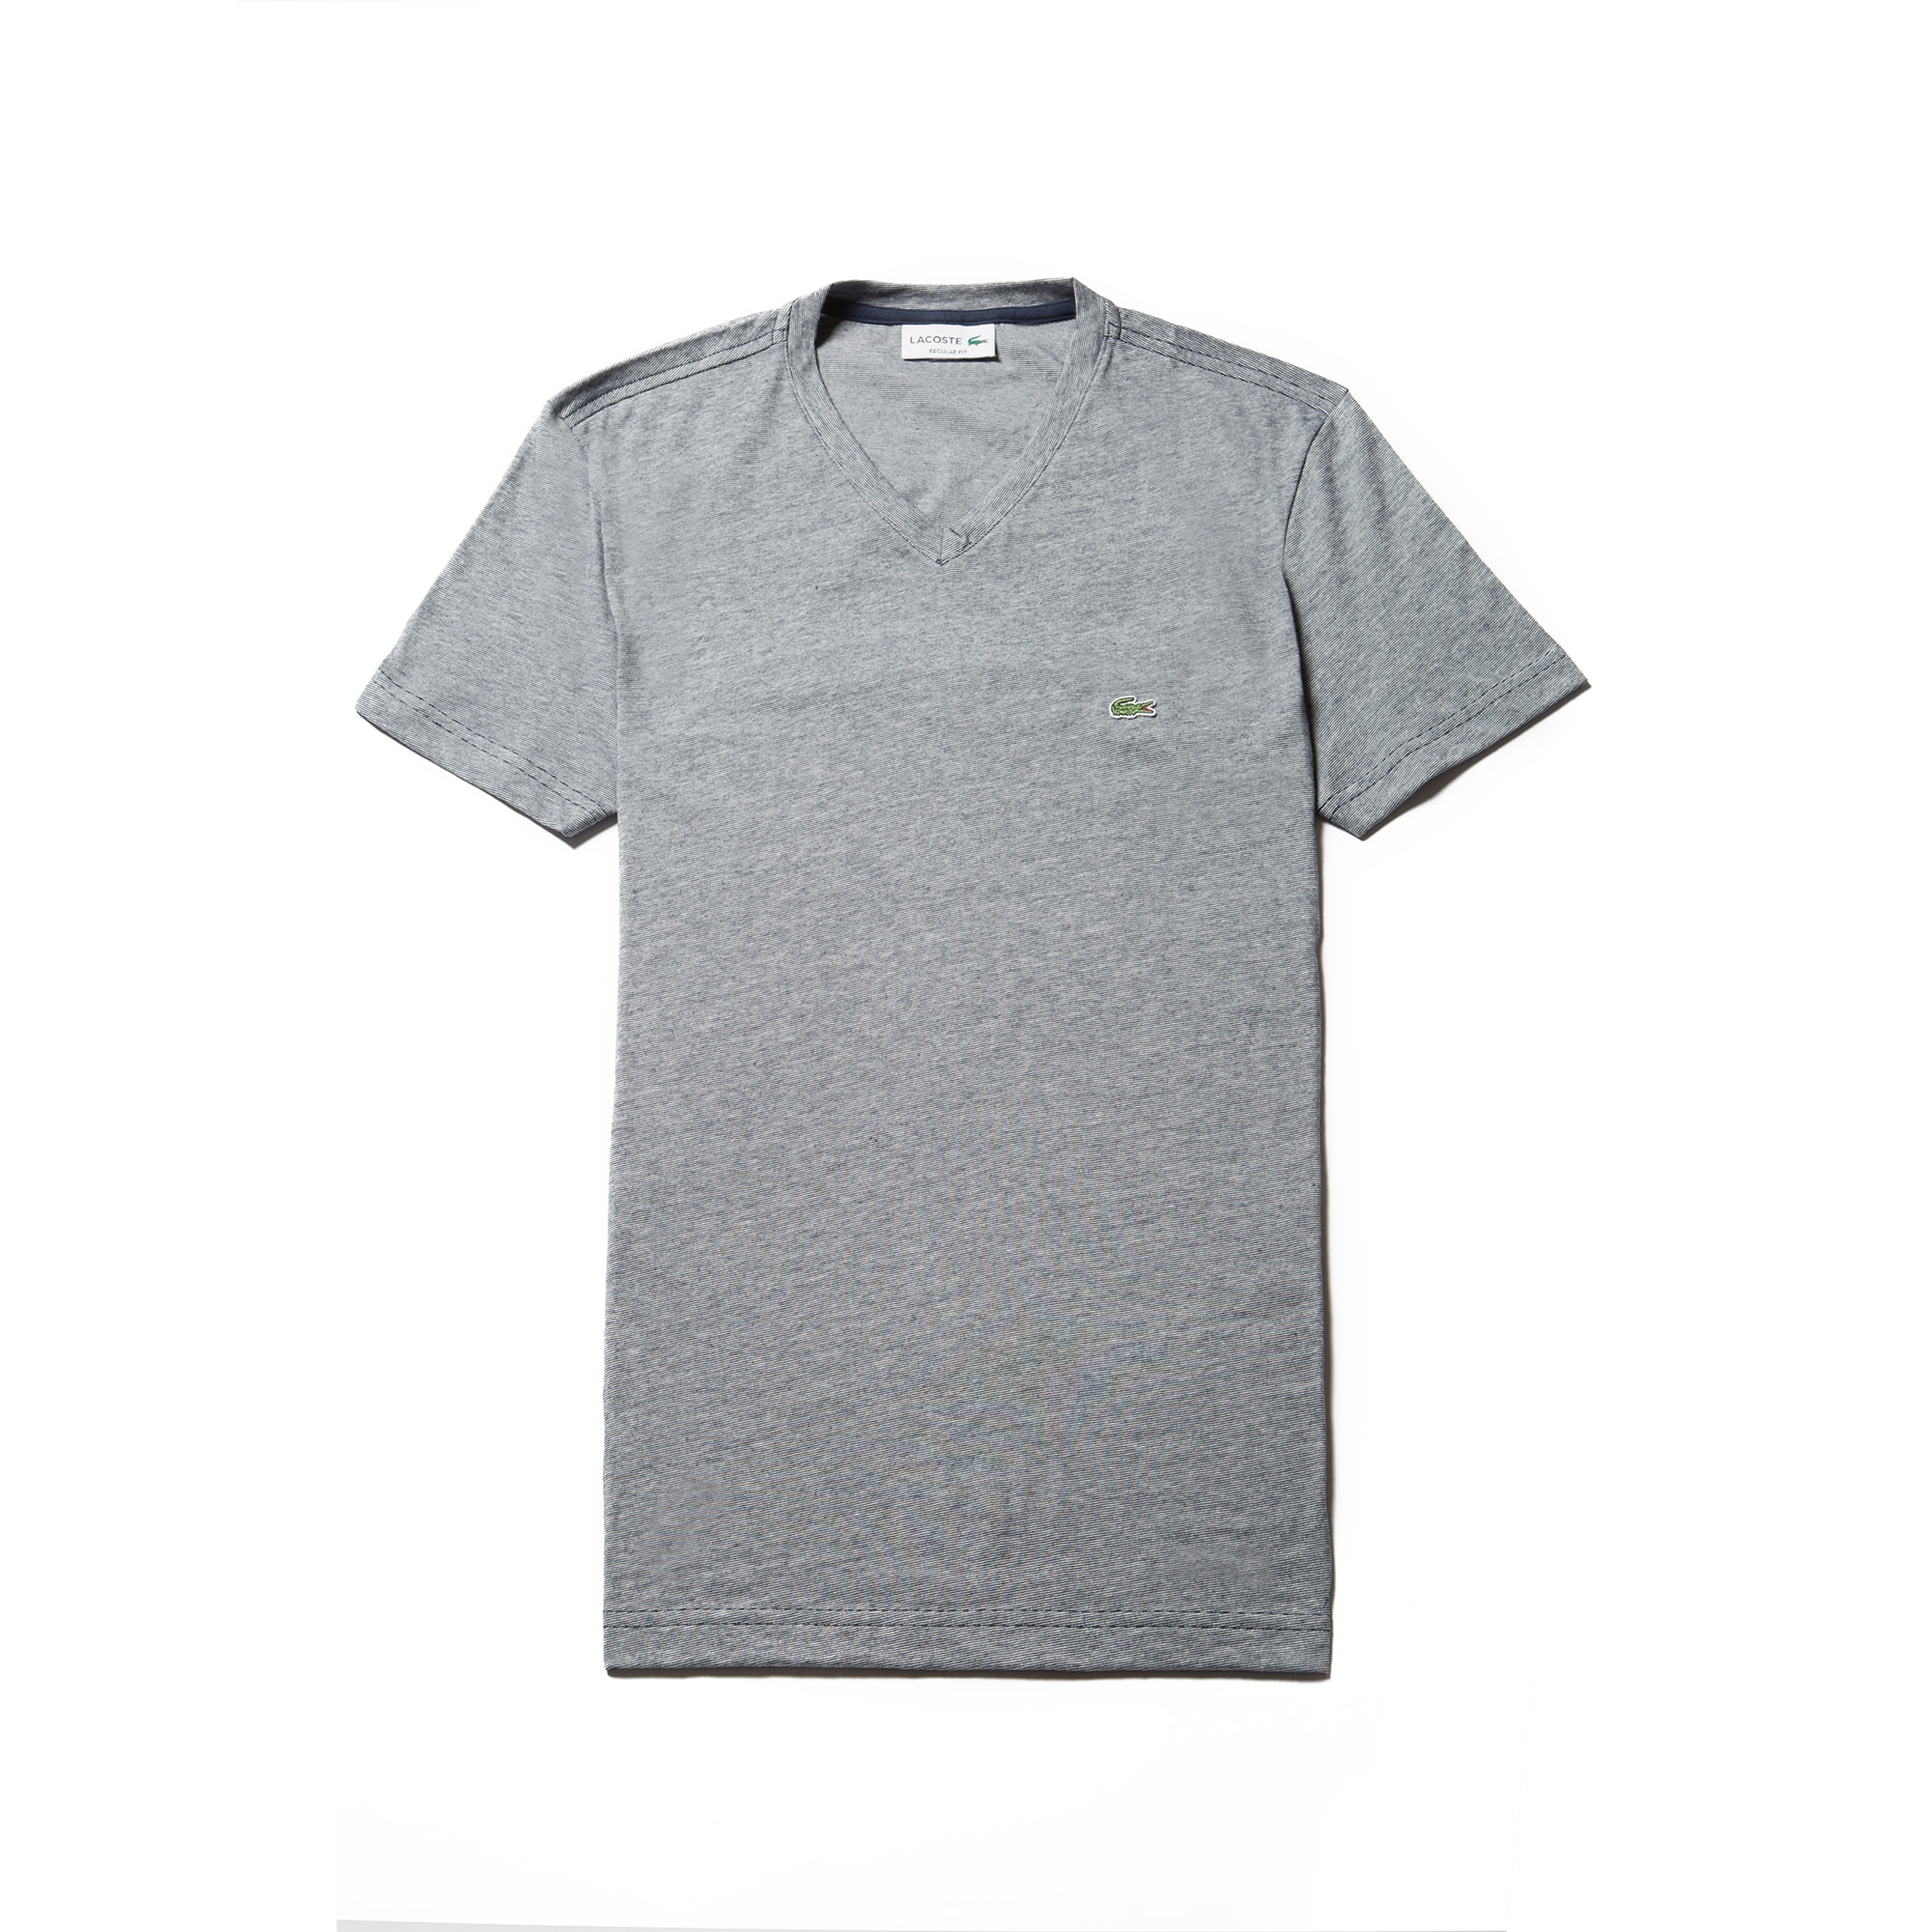 Men's V-neck Thin Striped Cotton Jersey T-shirt